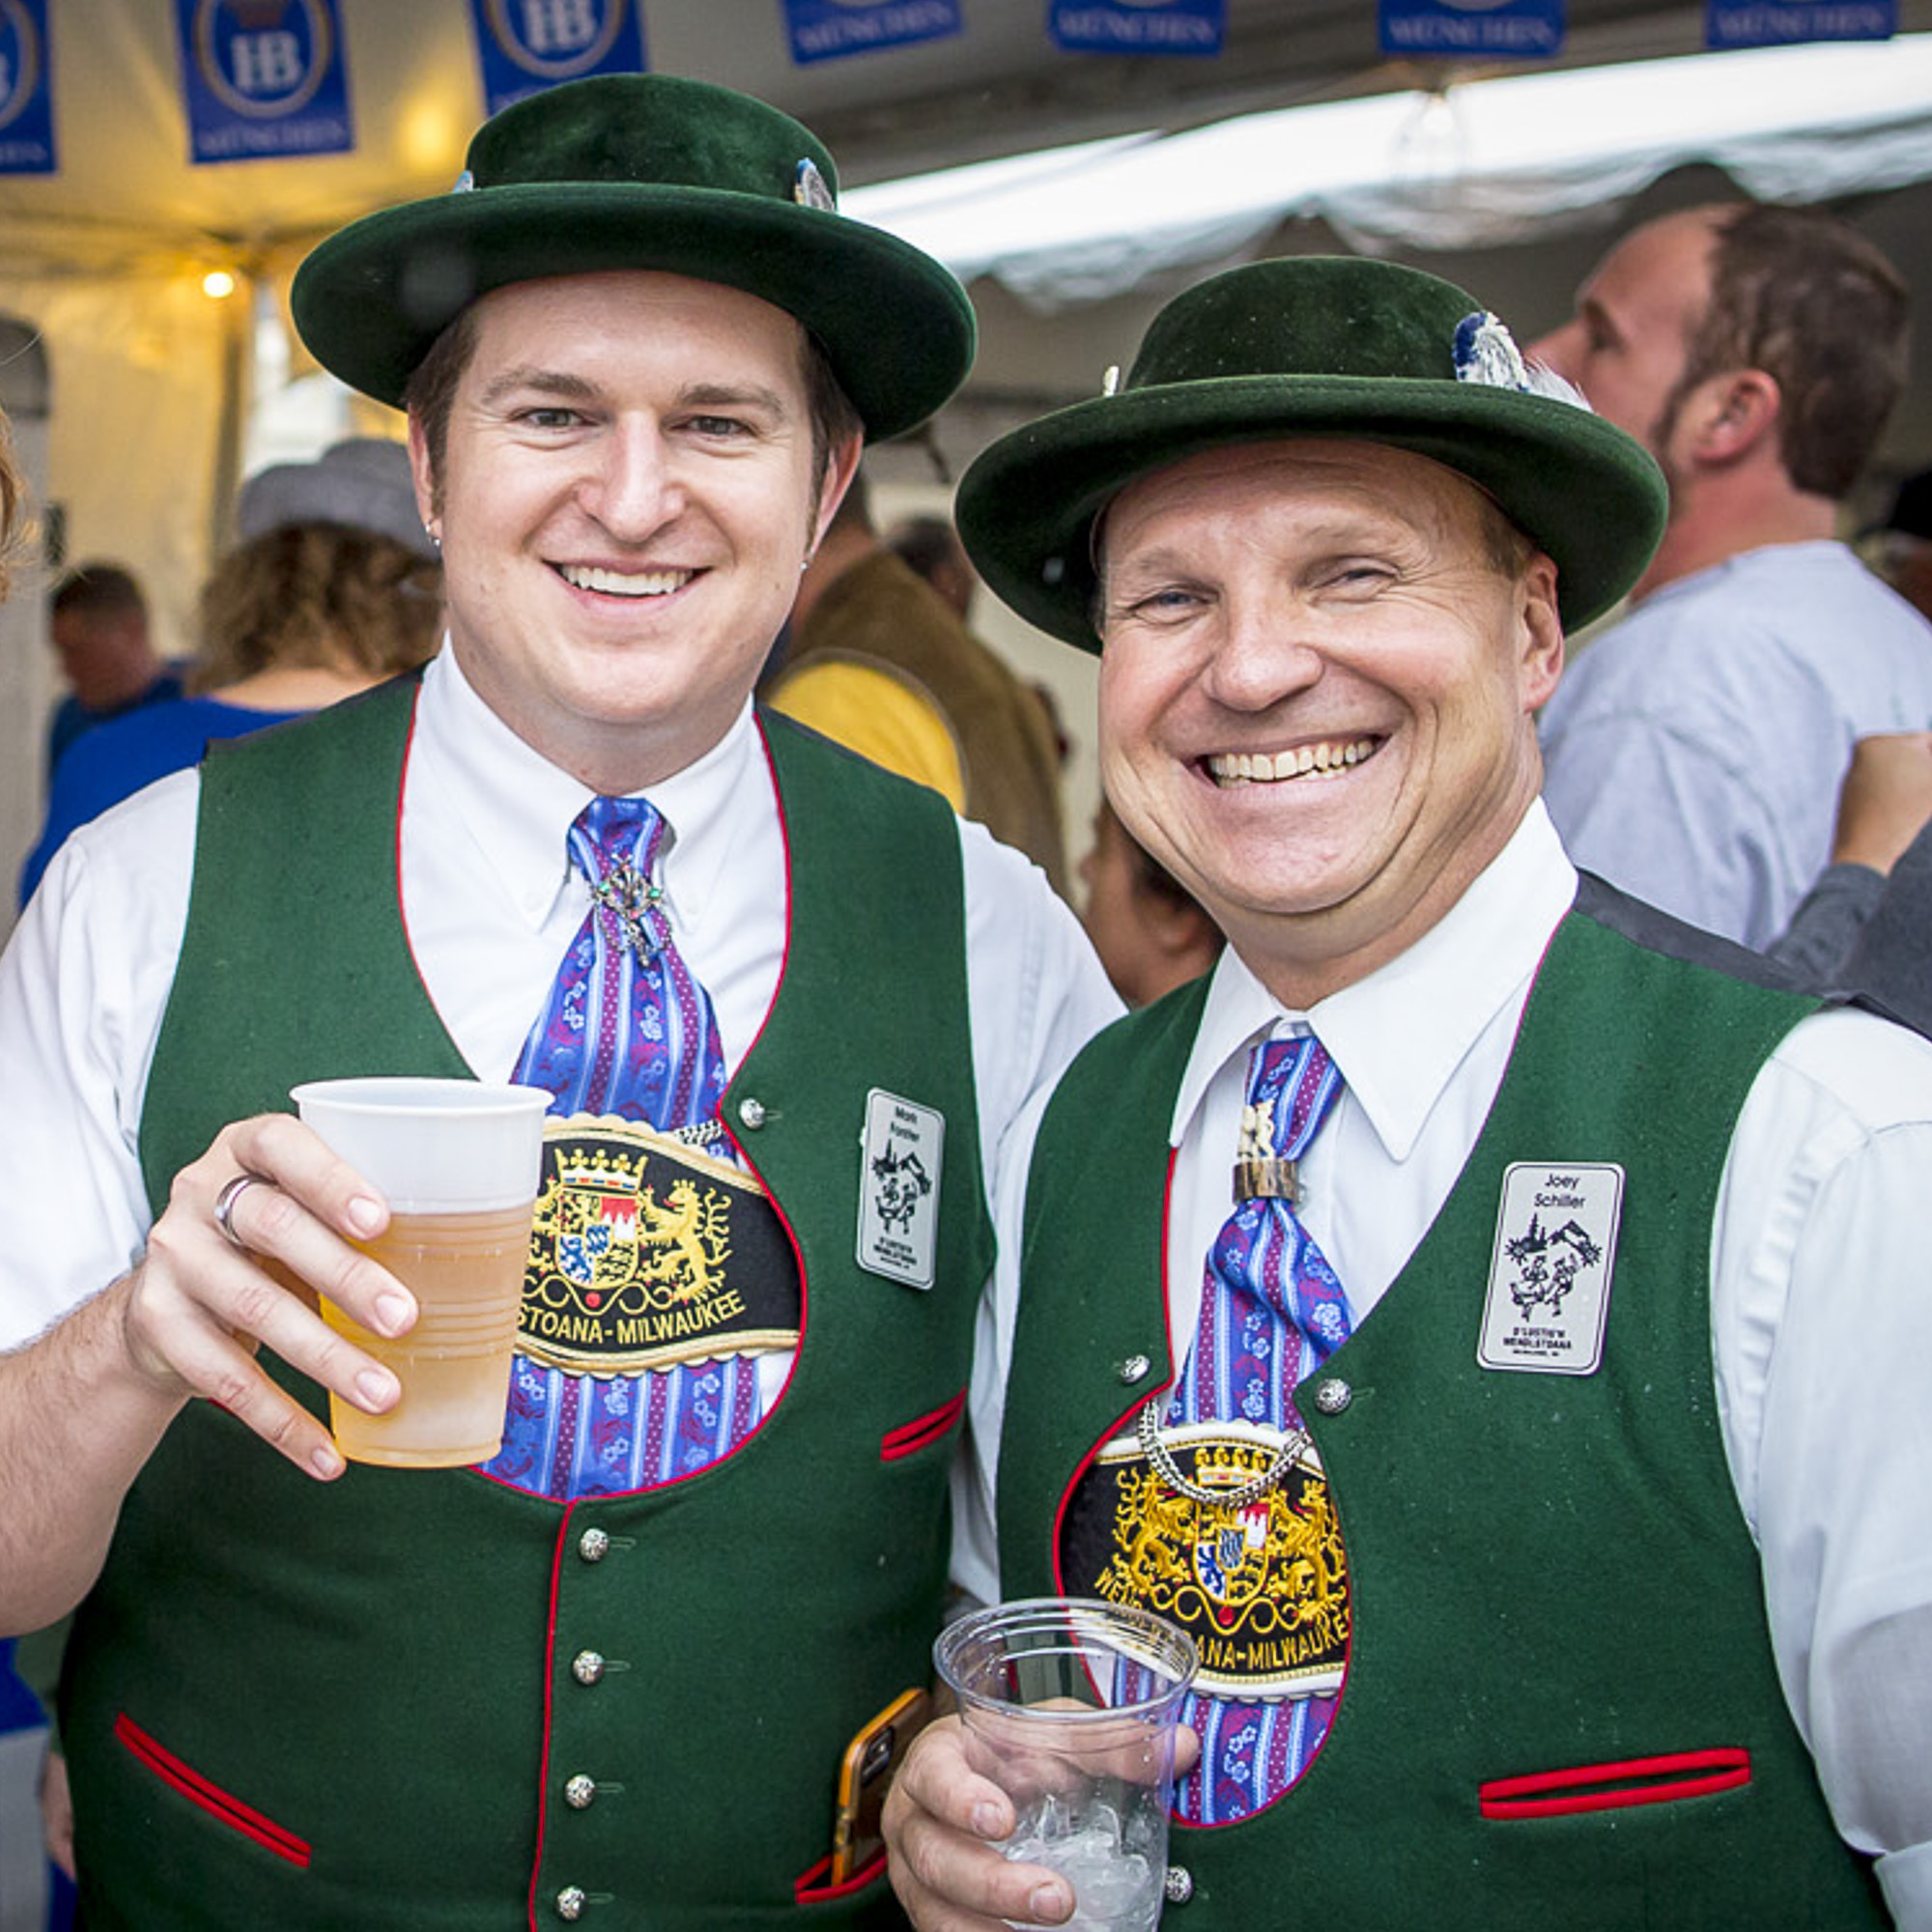 VOLUNTEER - Earn FREE food, T-shirts and Beer!Bier schlepping, registration and other positions available.